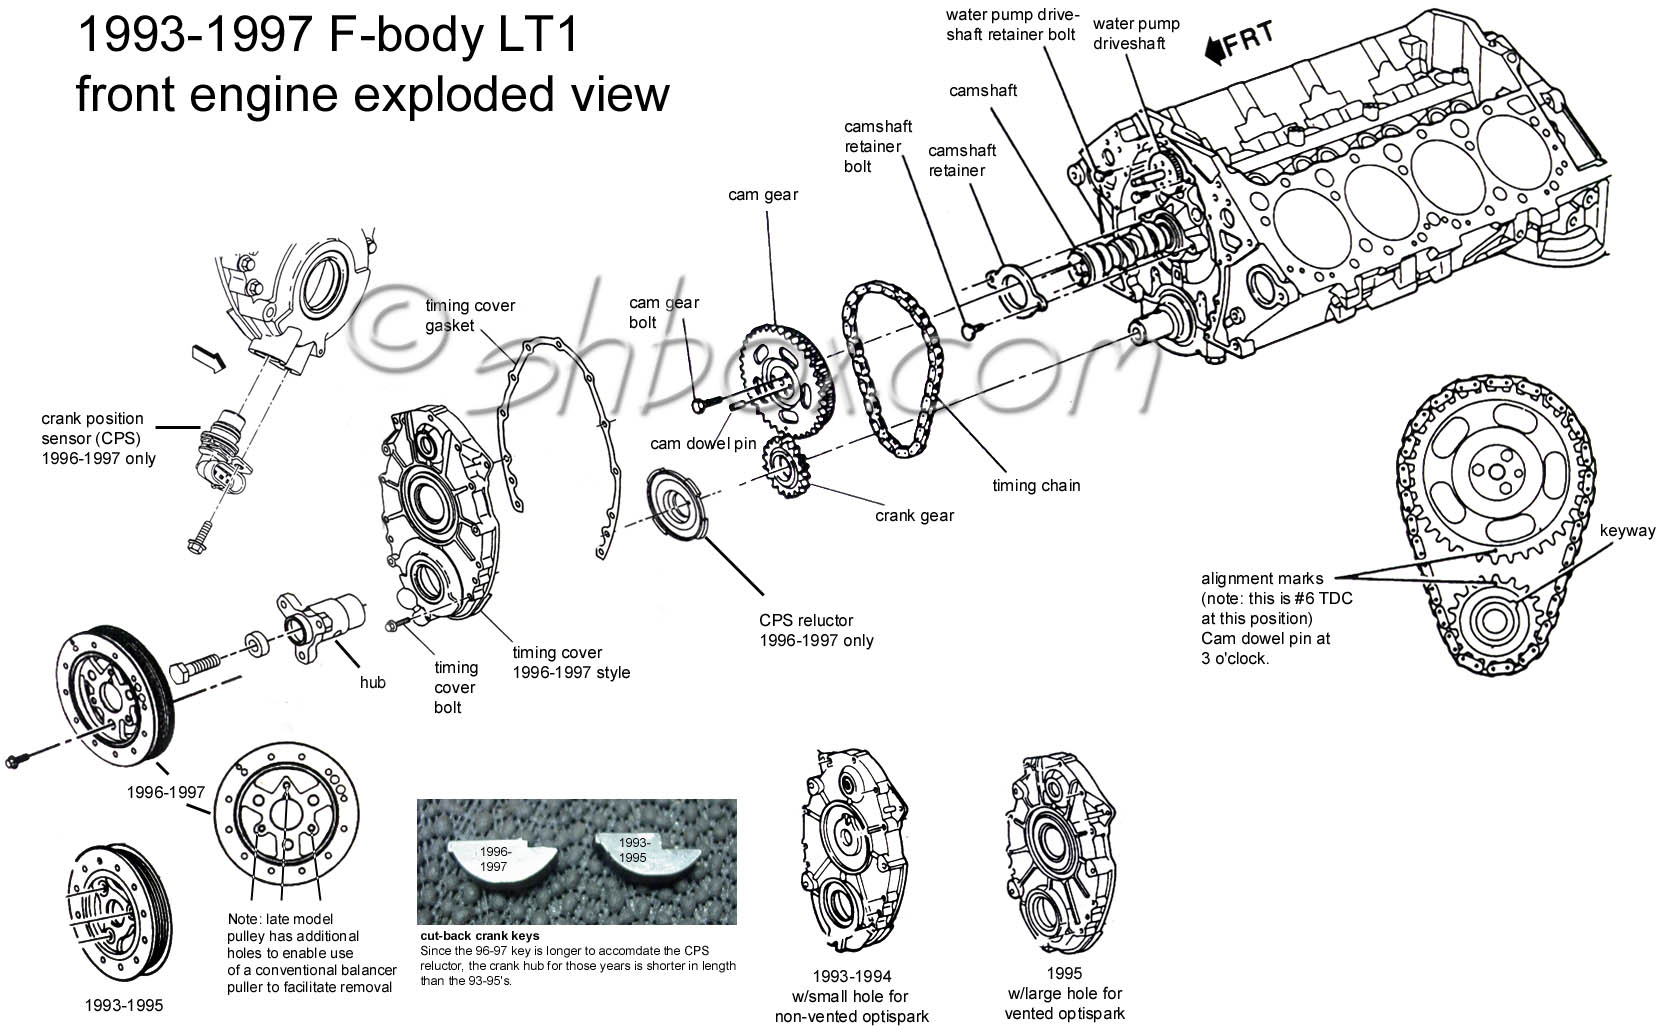 Lt1 Optispark Wiring Diagram : 28 Wiring Diagram Images